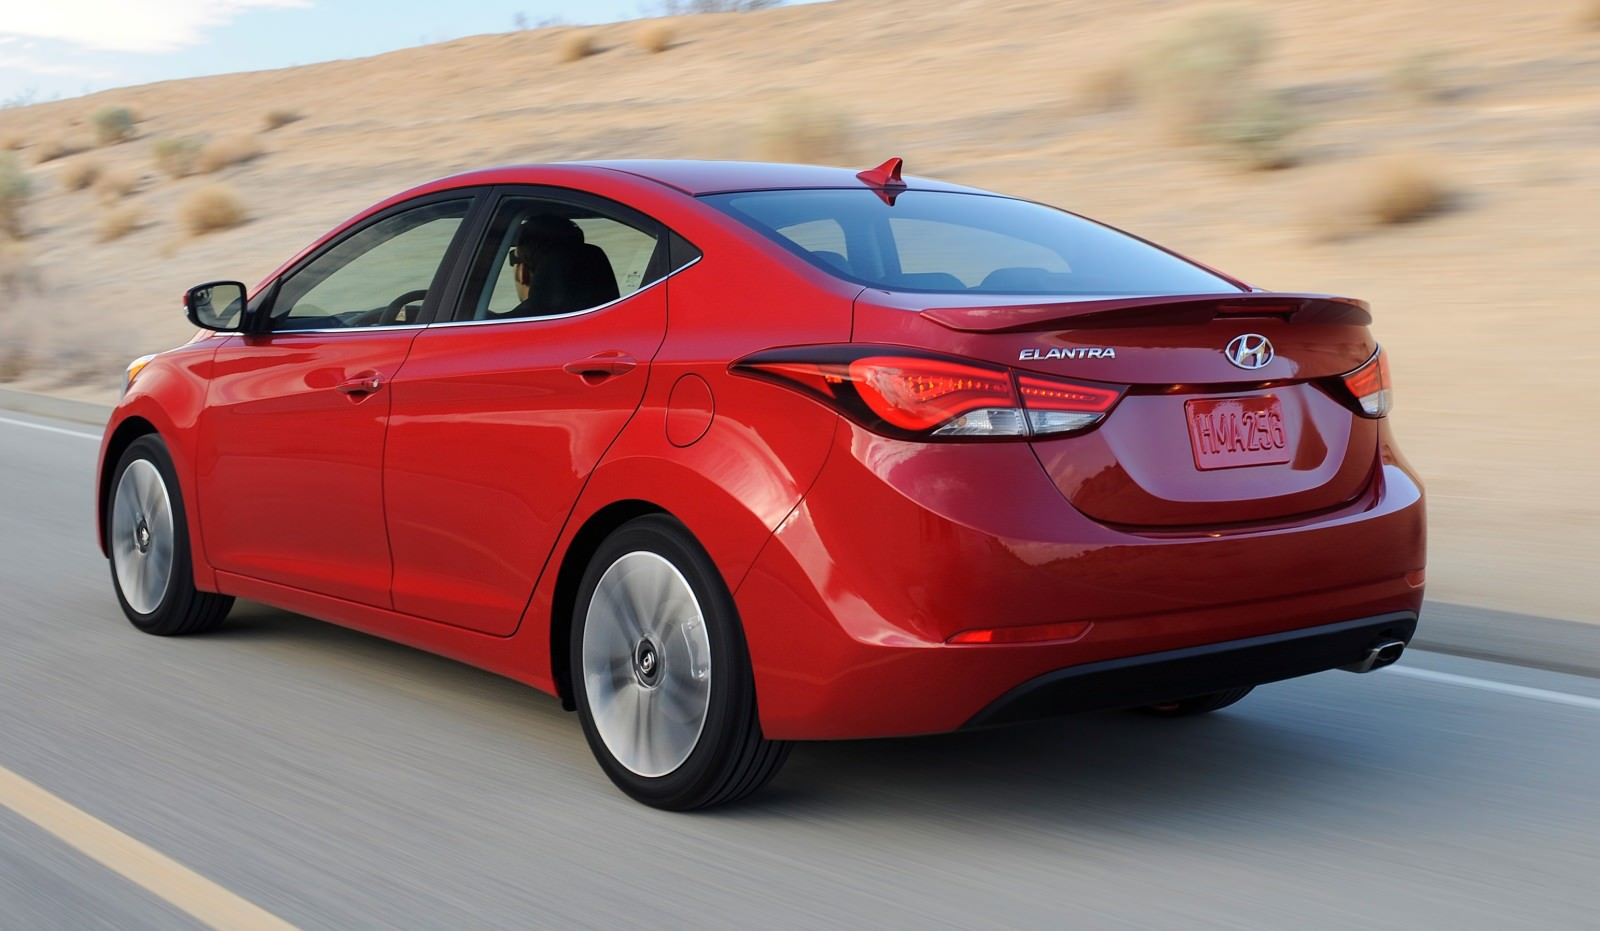 2015 Hyundai Elantra Sedan Brings Classy LED and Tech Updates  22